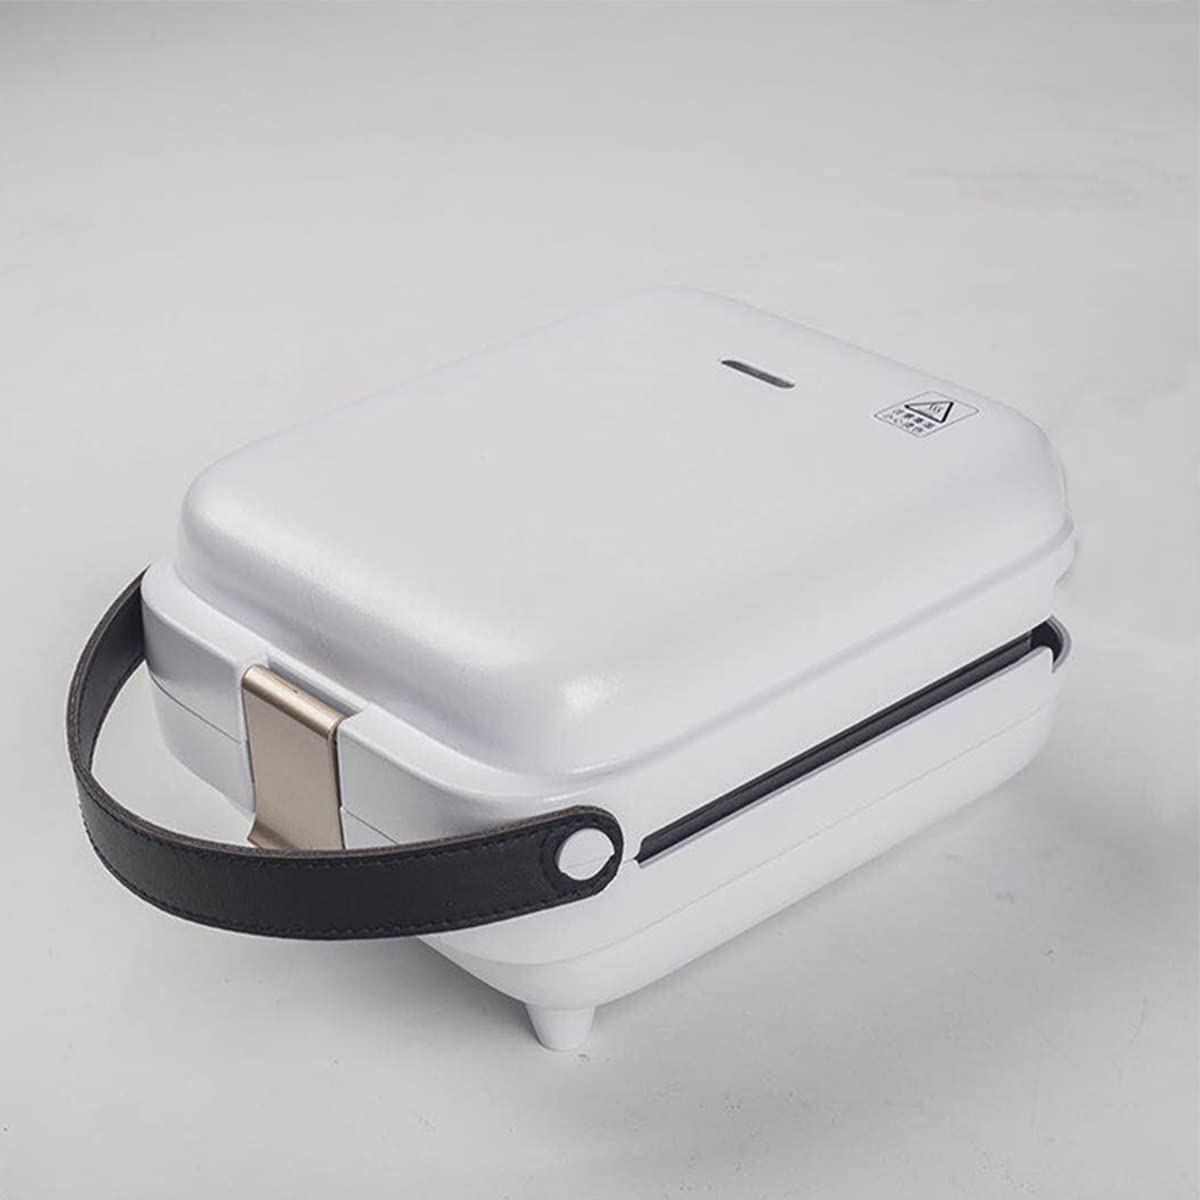 LJT Three-in-one Max Japan's largest assortment 57% OFF Sandwich Waffle Maker Portable Non-Stic Cooking